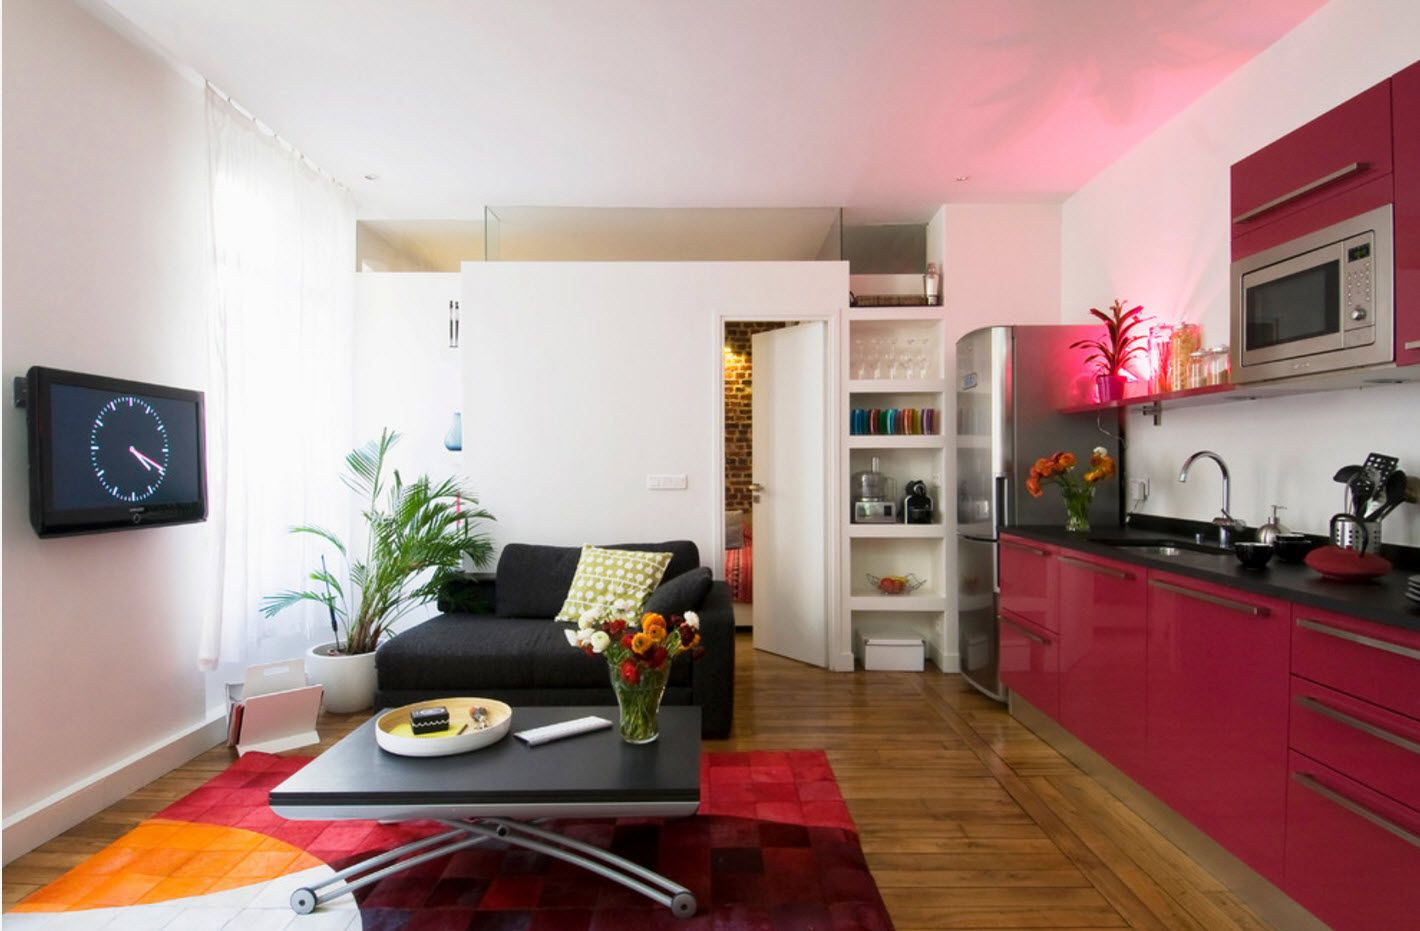 Pinky studio design in modern style